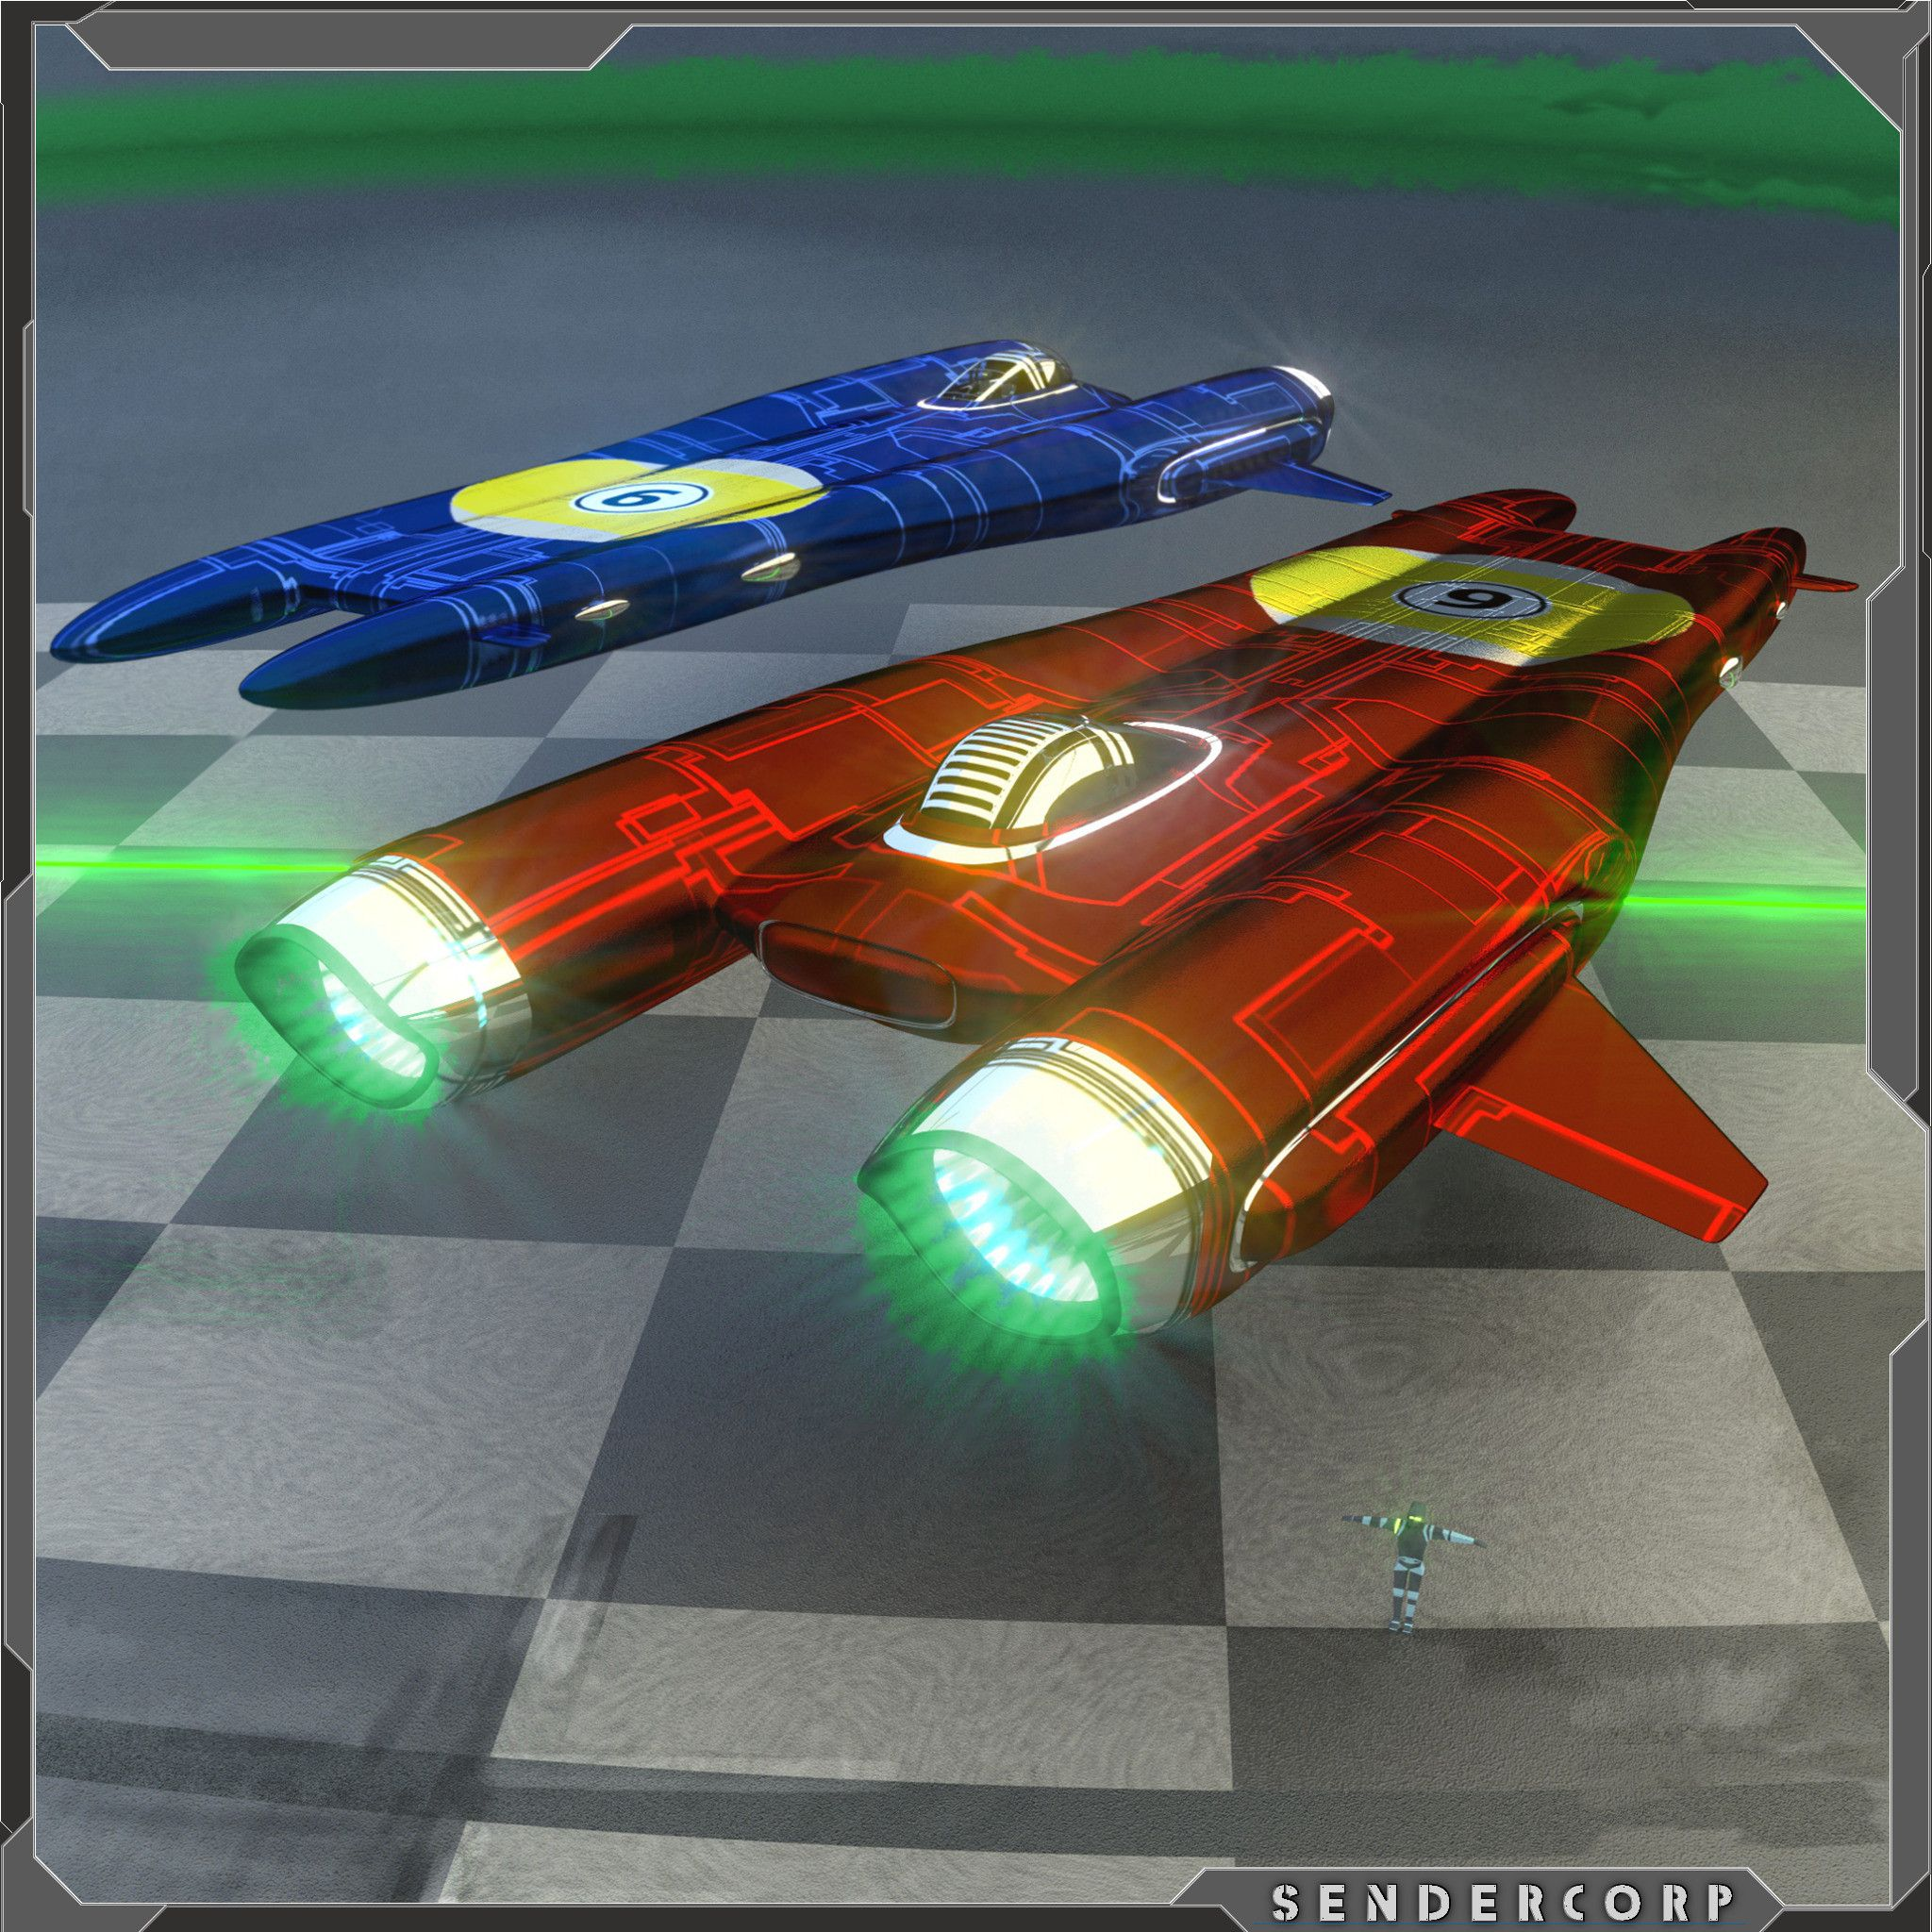 space ship racer - Google Search